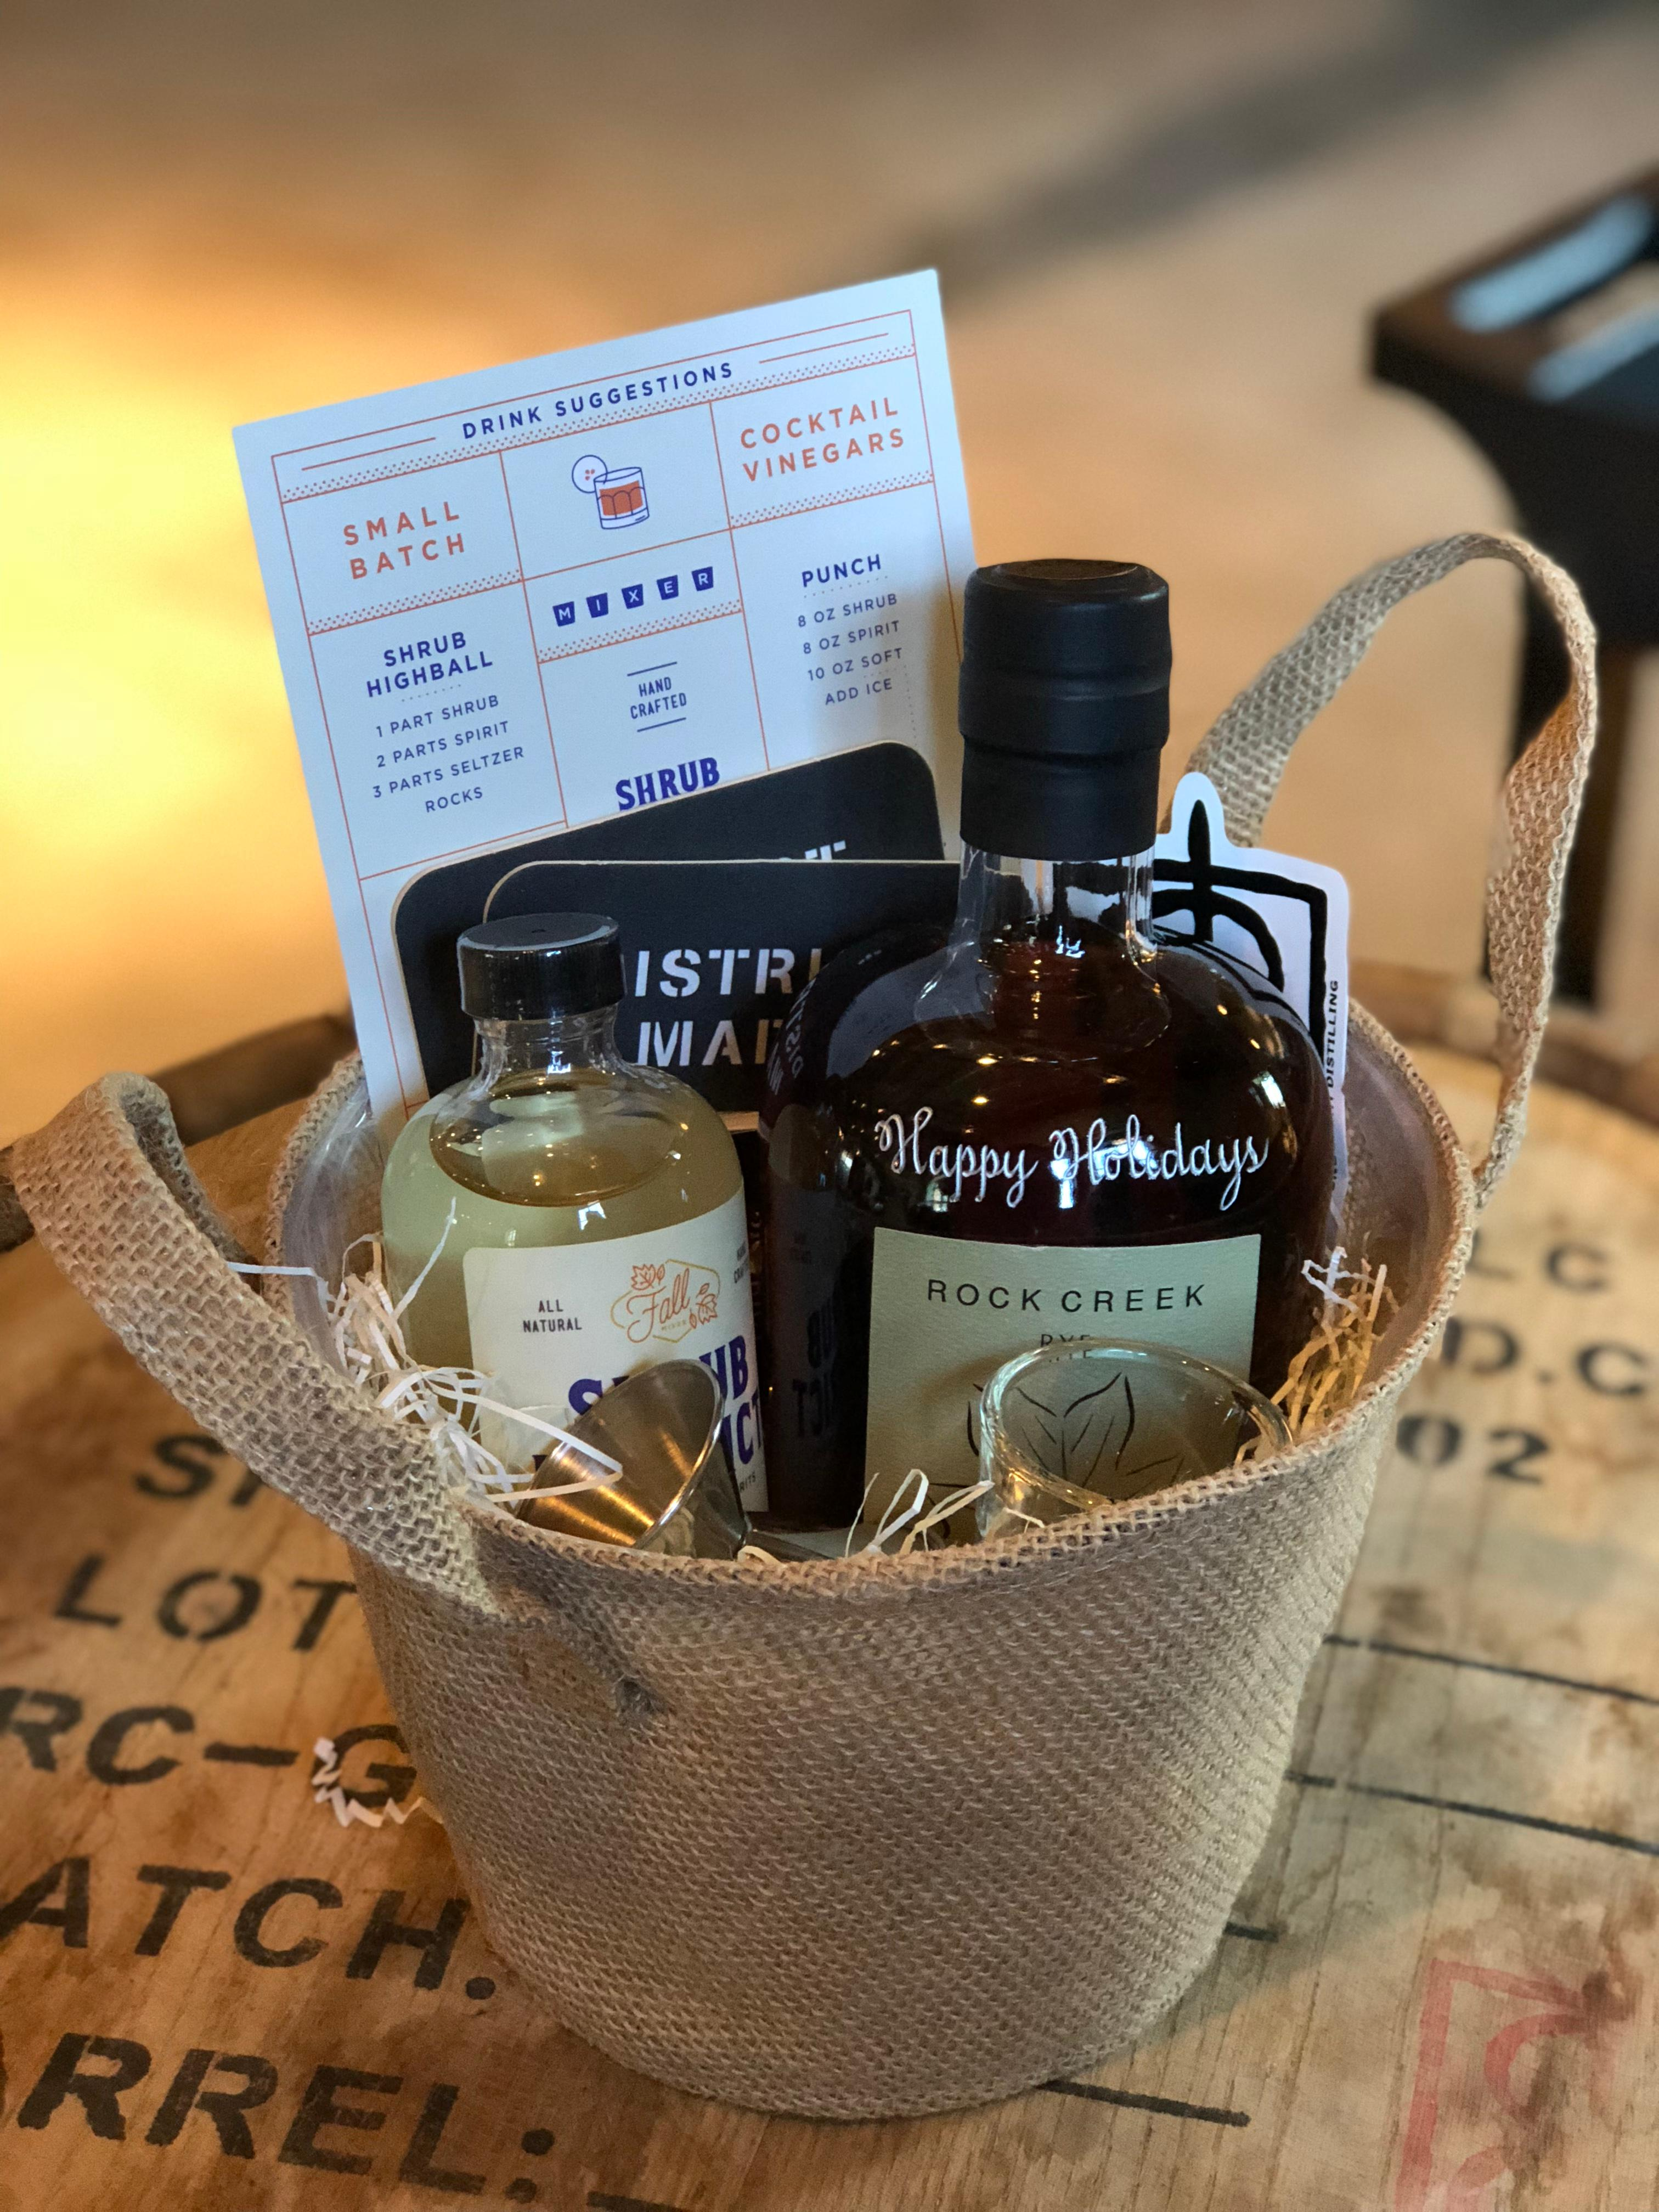 <p>Custom Engraved Bottle of Rock Creek Bourbon or Drink Local Kit from One Eight Distilling // Price: $50-$79.99 // Buy at the Tasting Room or the Dupont FreshFarm Market // www.oneeightdistilling.com // (Image: One Eight Distilling)<br></p>